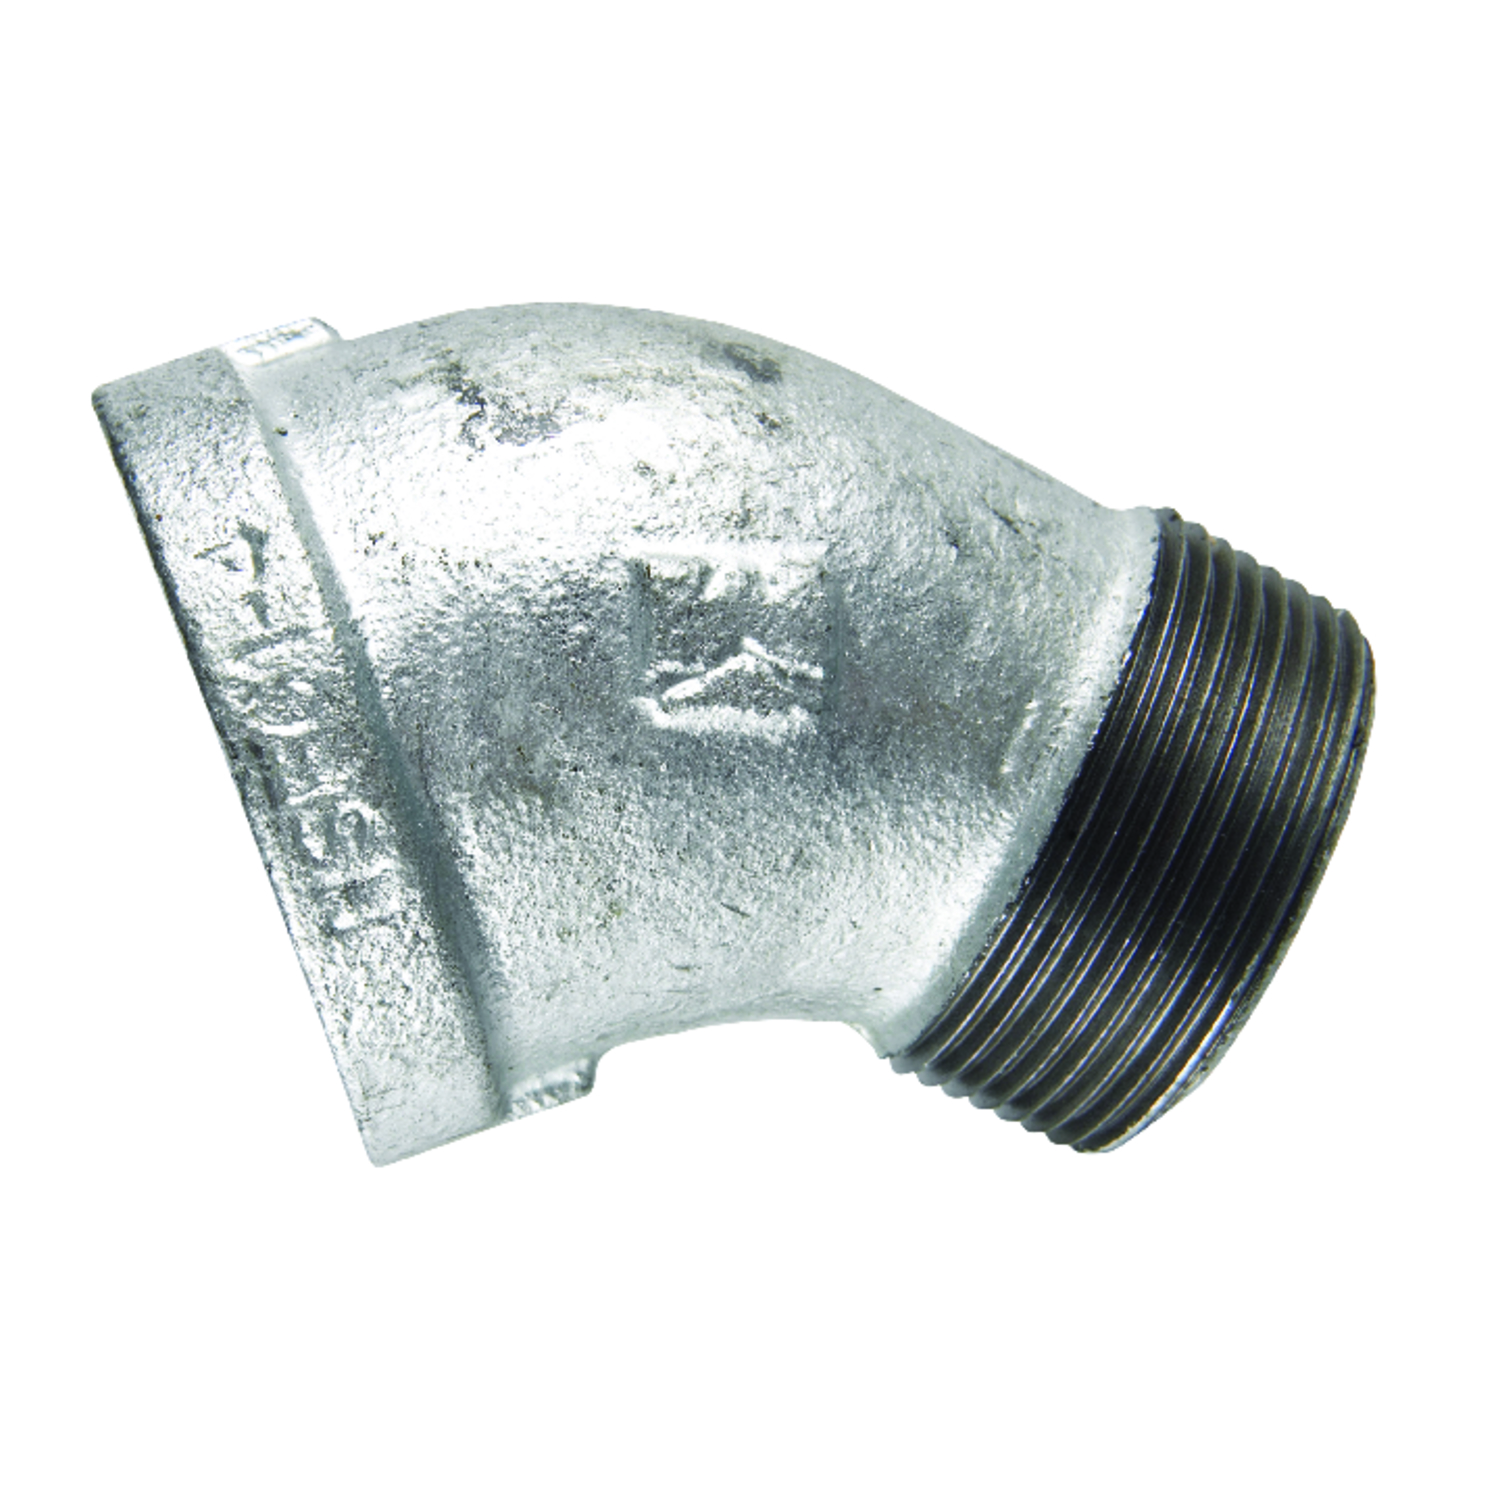 B & K  2 in. FPT   x 2 in. Dia. MPT  Galvanized  Malleable Iron  Street Elbow